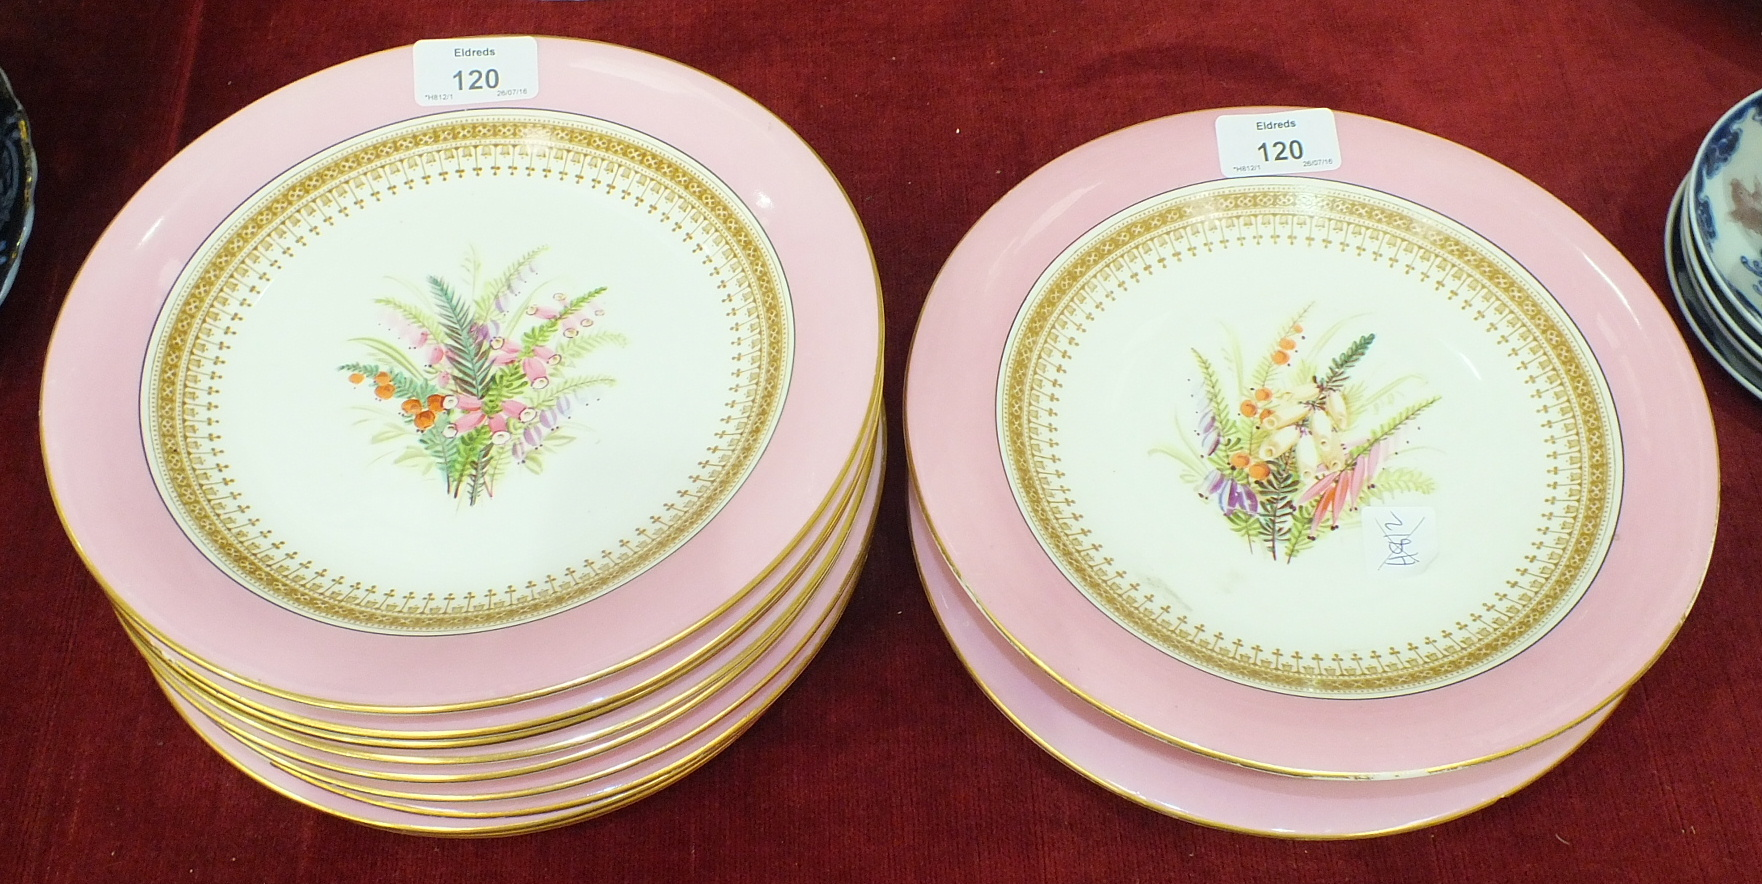 A Royal Worcester porcelain part dessert service decorated with a spray of summer flowers within a